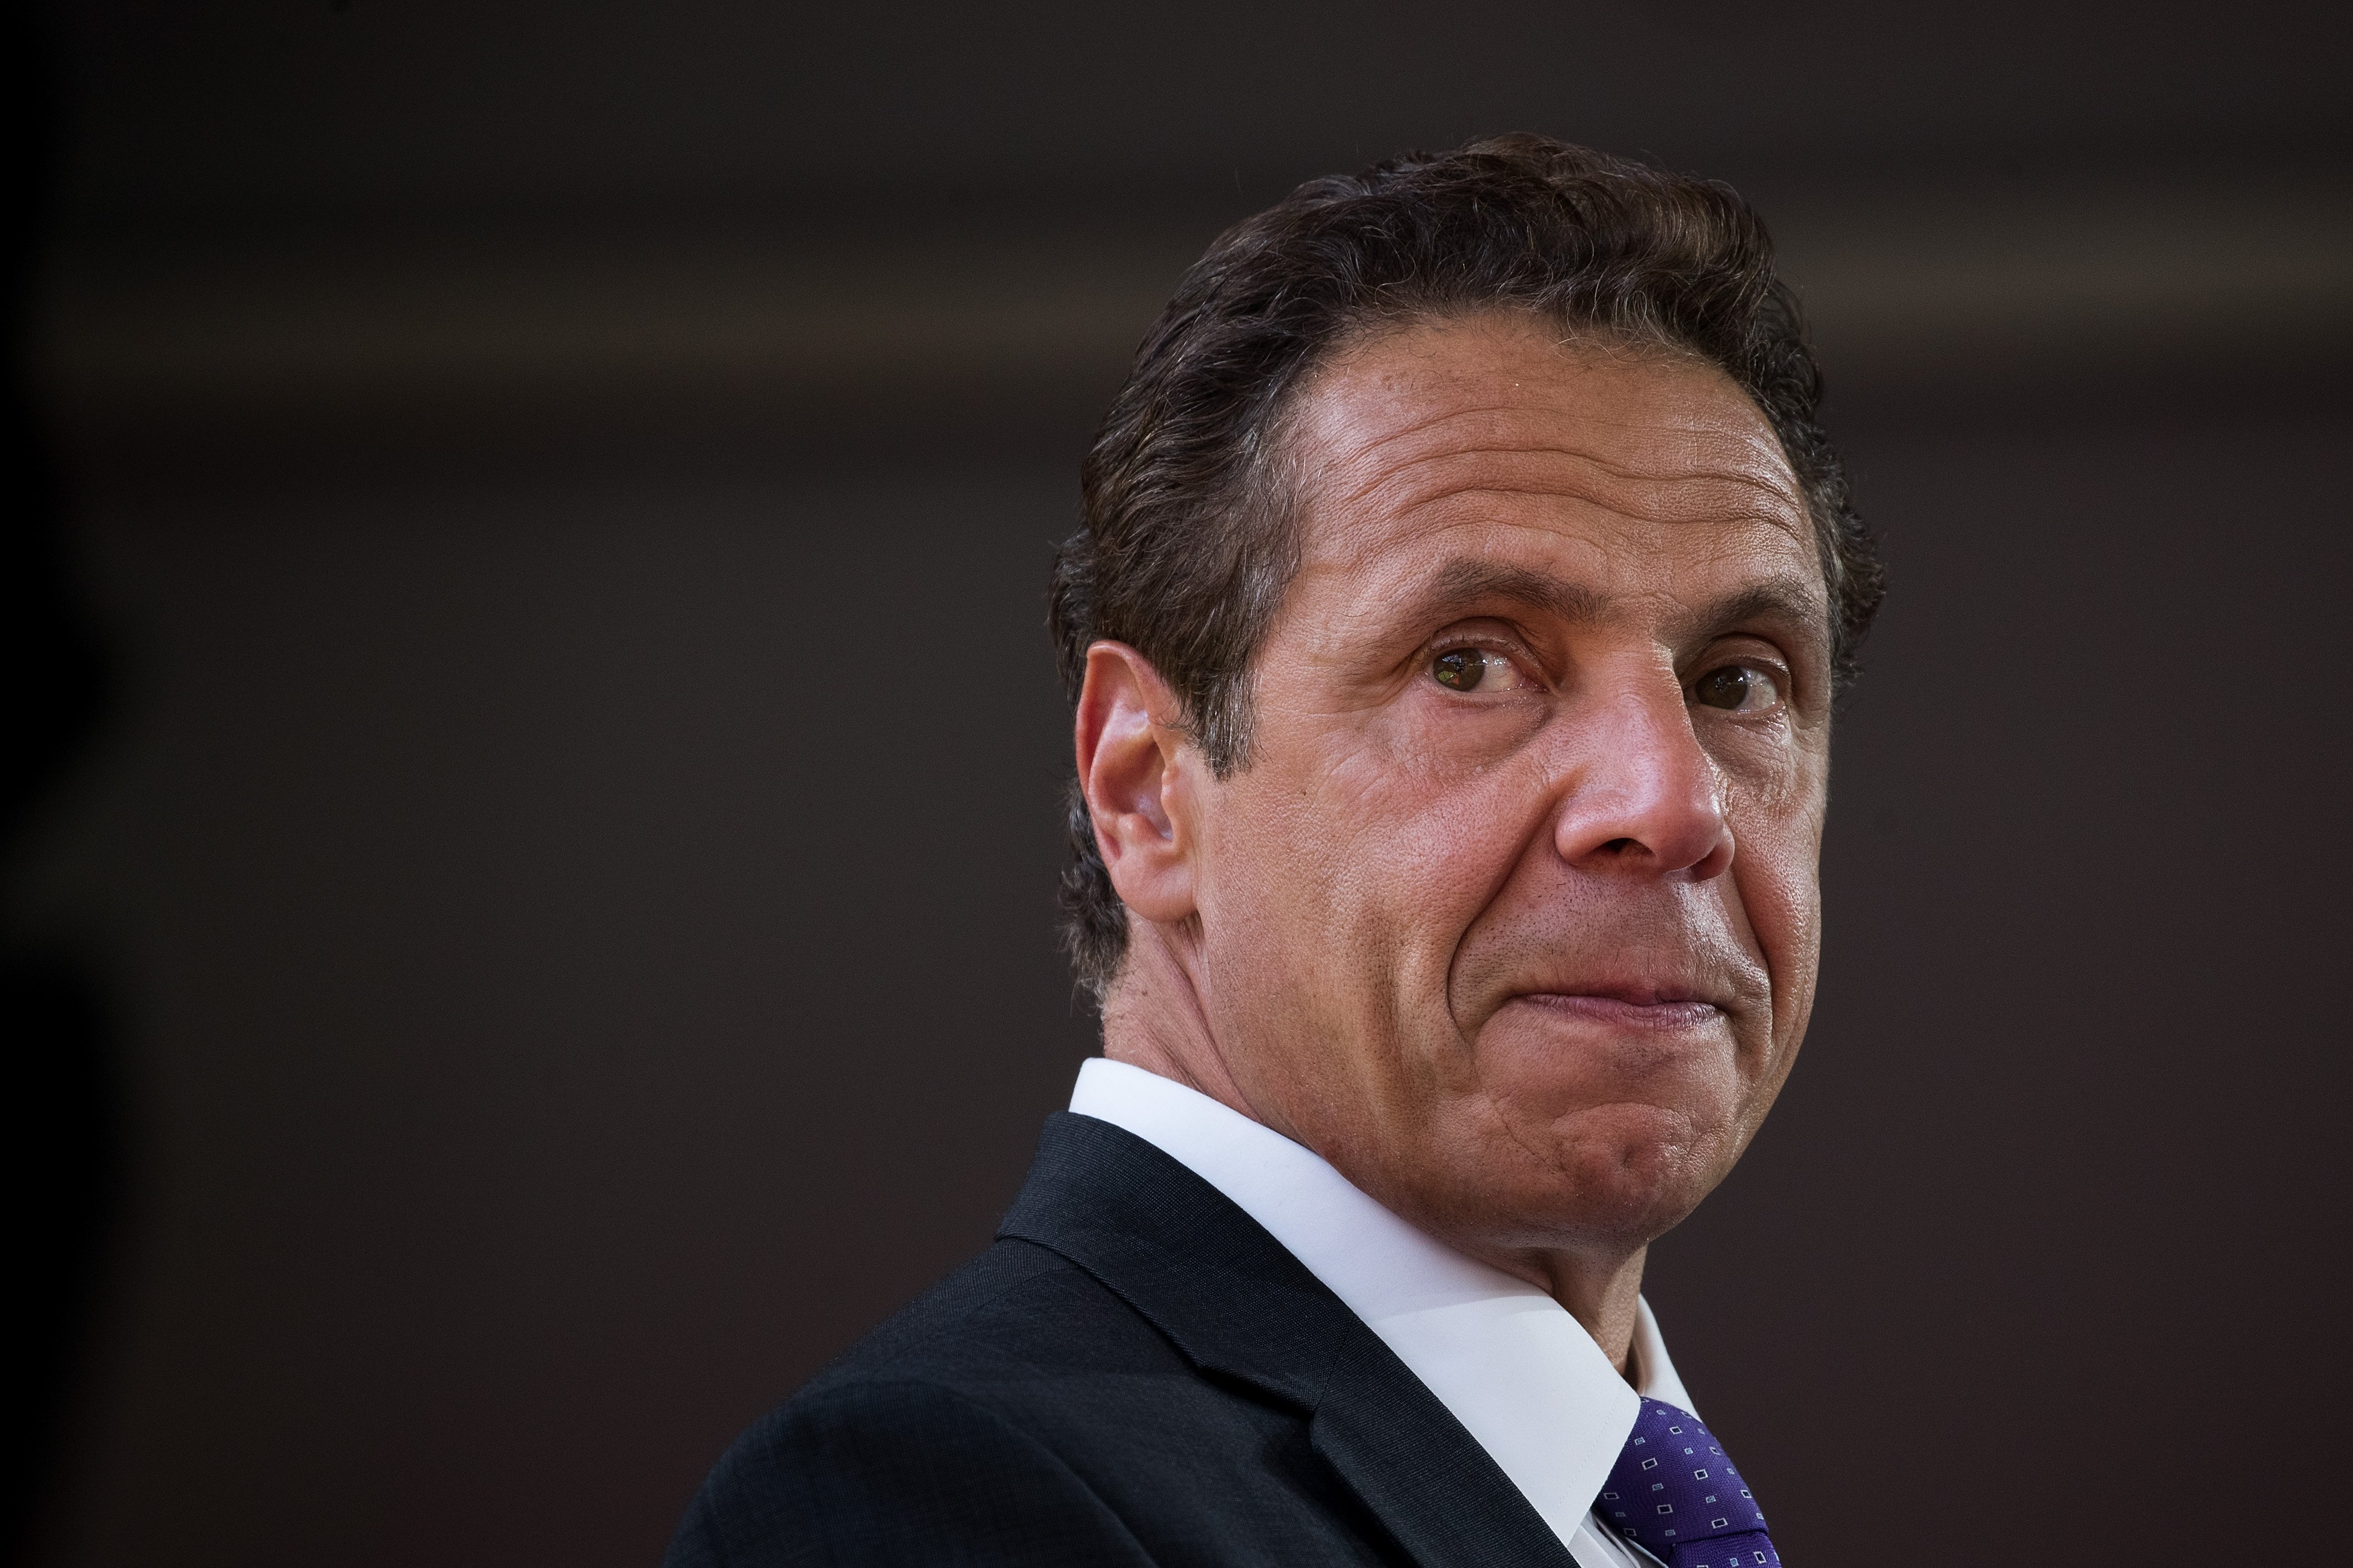 New York Governor Andrew Cuomo during a dedication ceremony to mark the opening of the new campus of Cornell Tech on Roosevelt Island, September 13, 2017 in New York City.   Photo: GettyImages